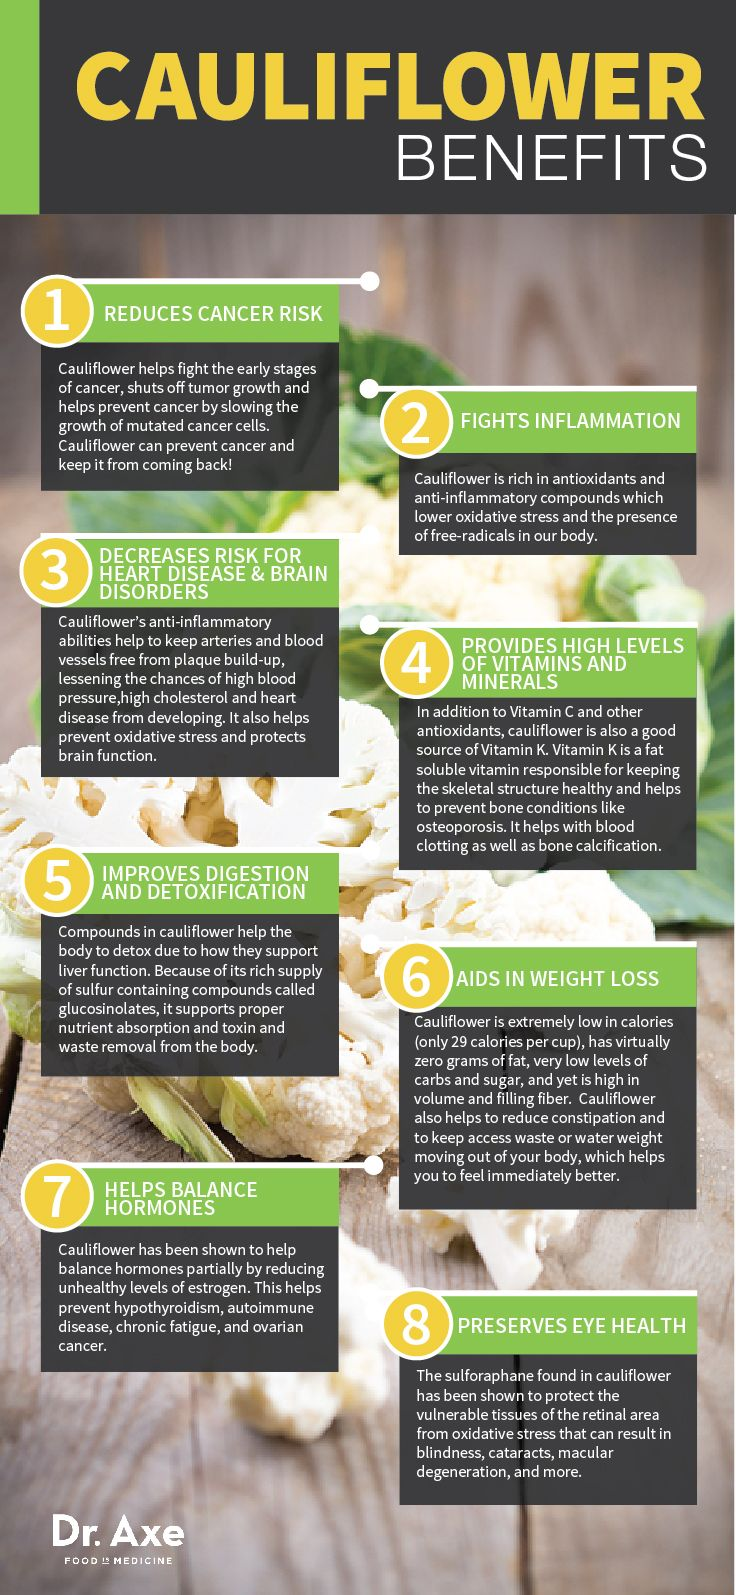 Cauliflower: Benefits, Nutrition & Recipes  http://www.draxe.com #health #natural #holistic #recipe